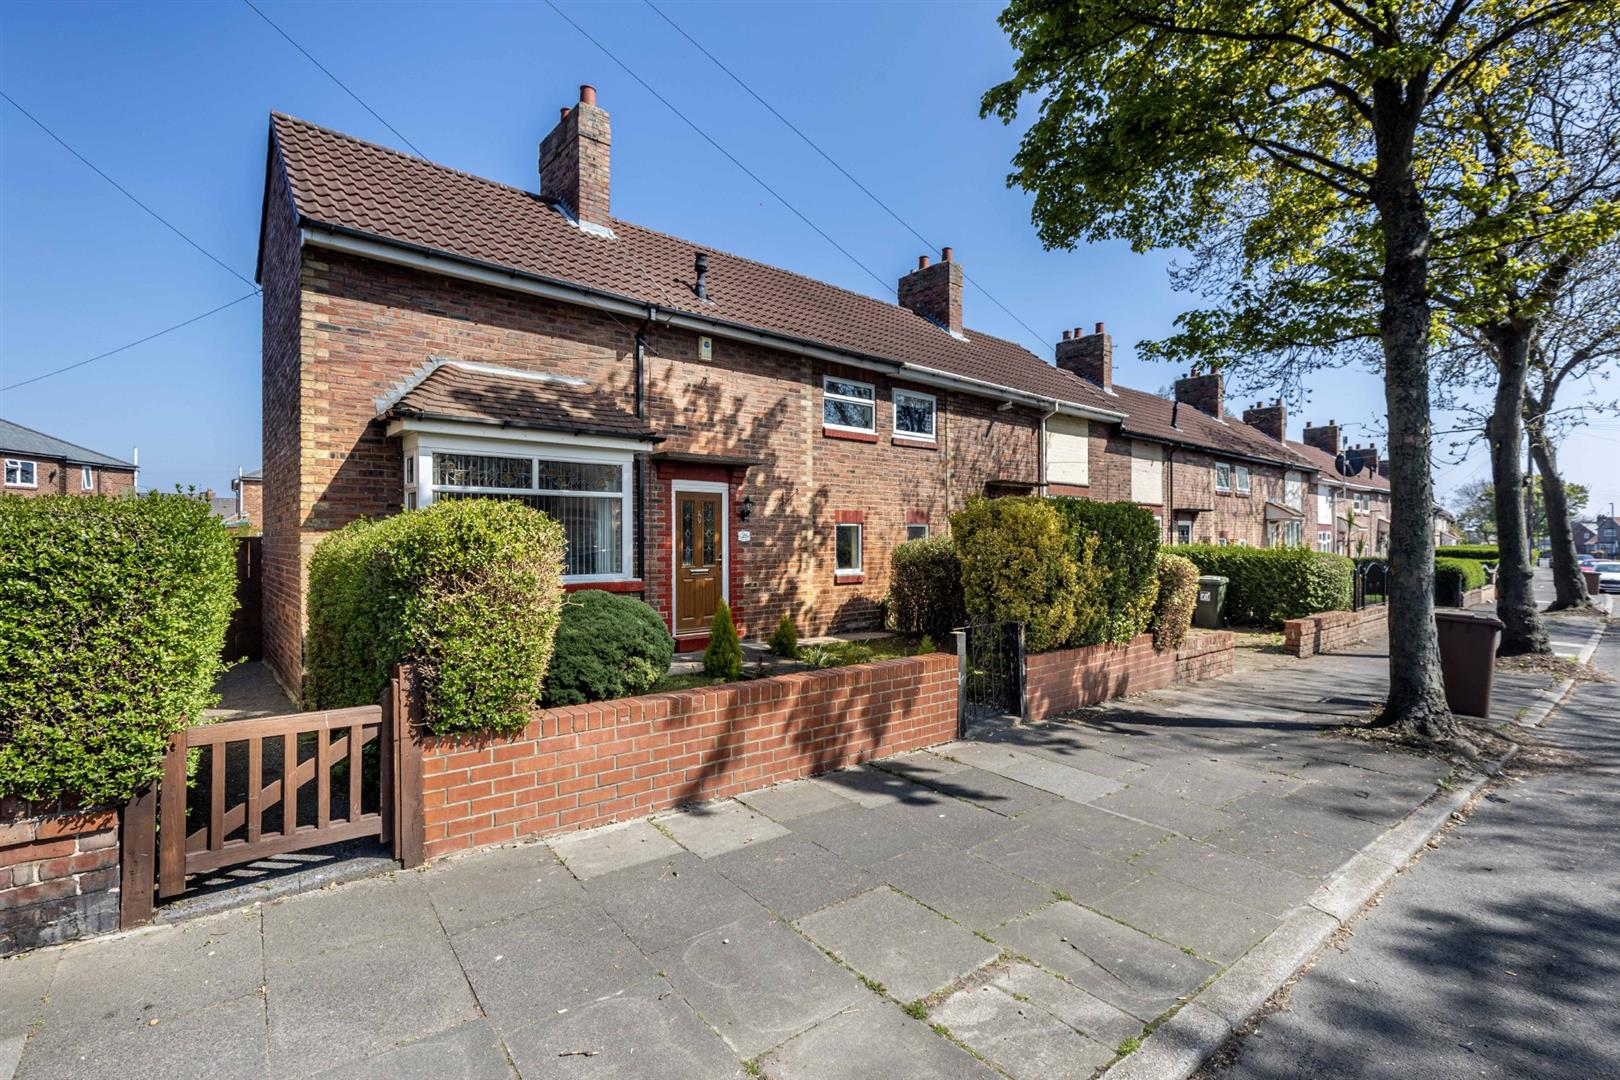 3 bed end of terrace house for sale in North Shields, NE29 7JD  - Property Image 1